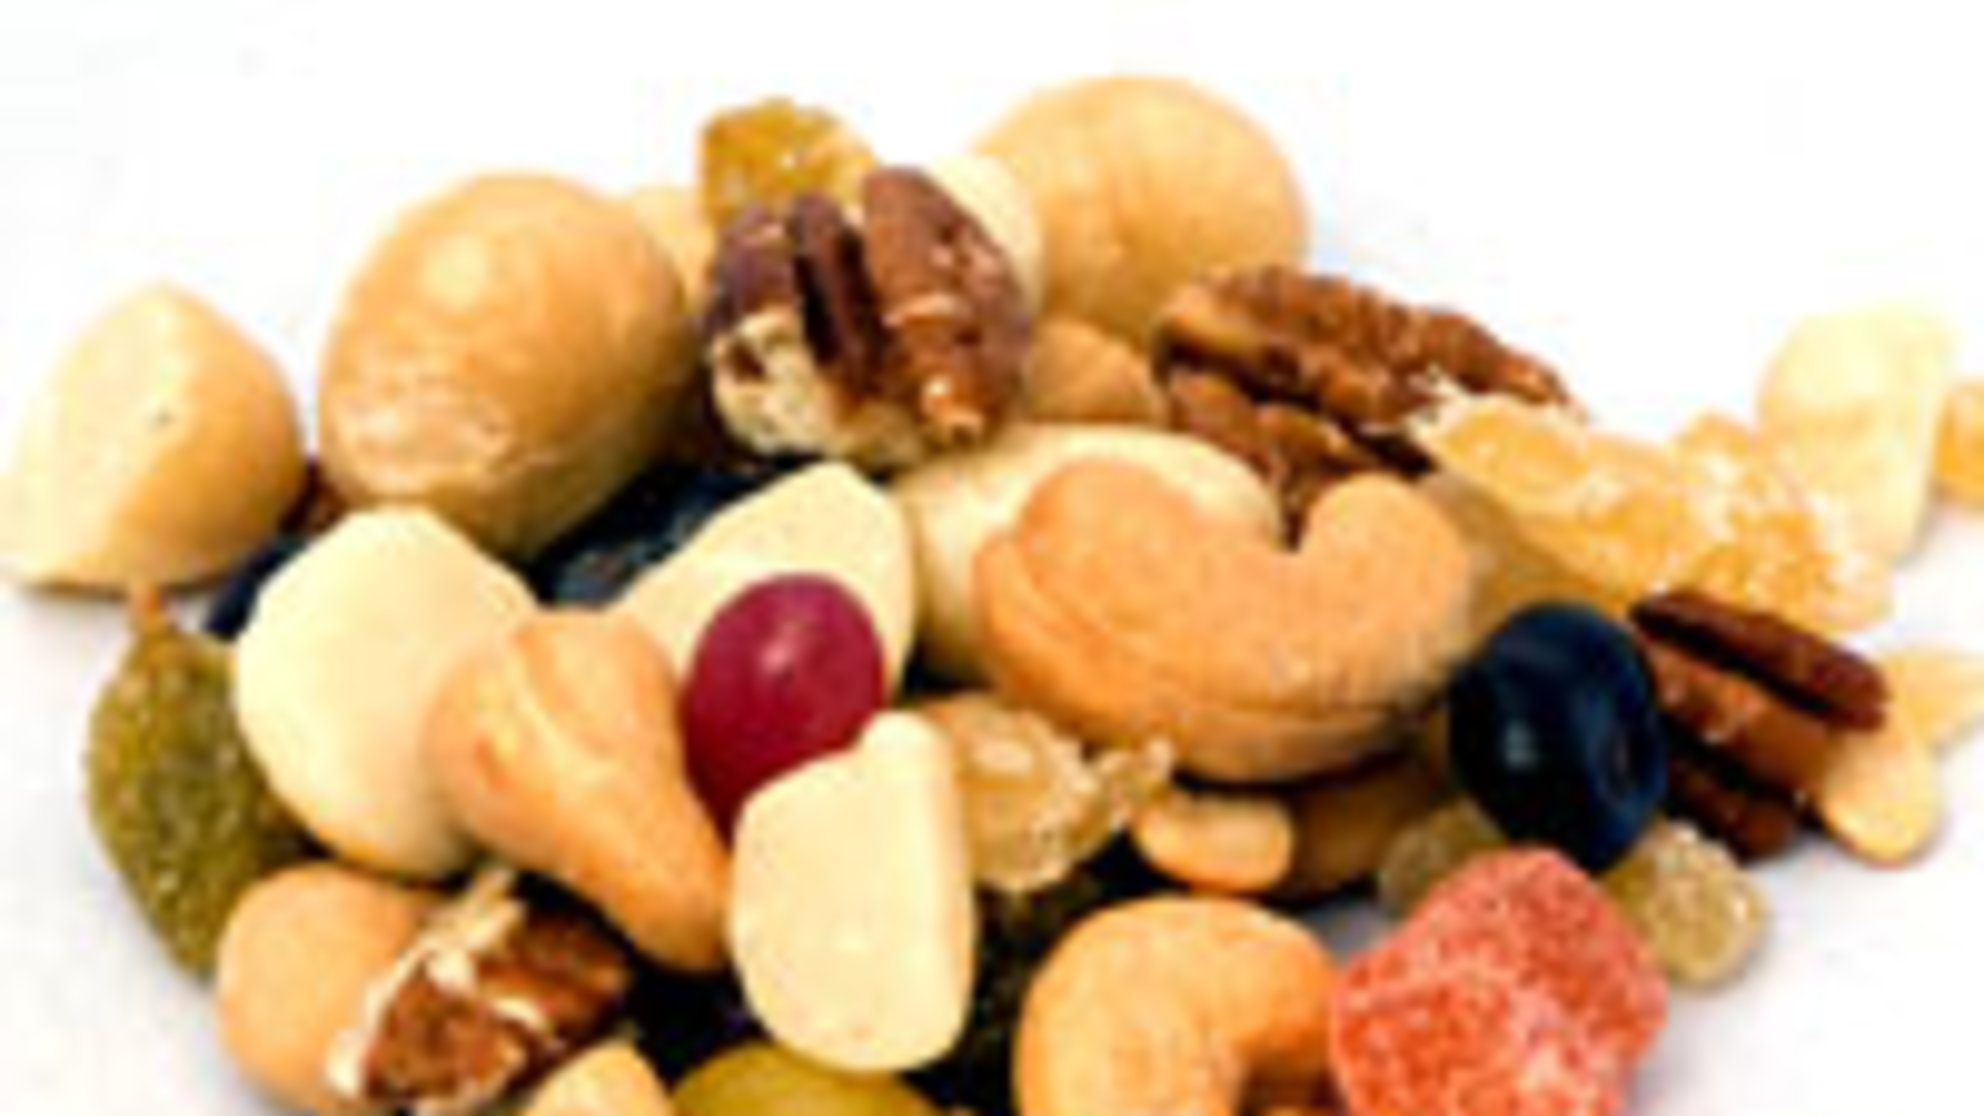 Foodie Friday: My Mixed Nuts